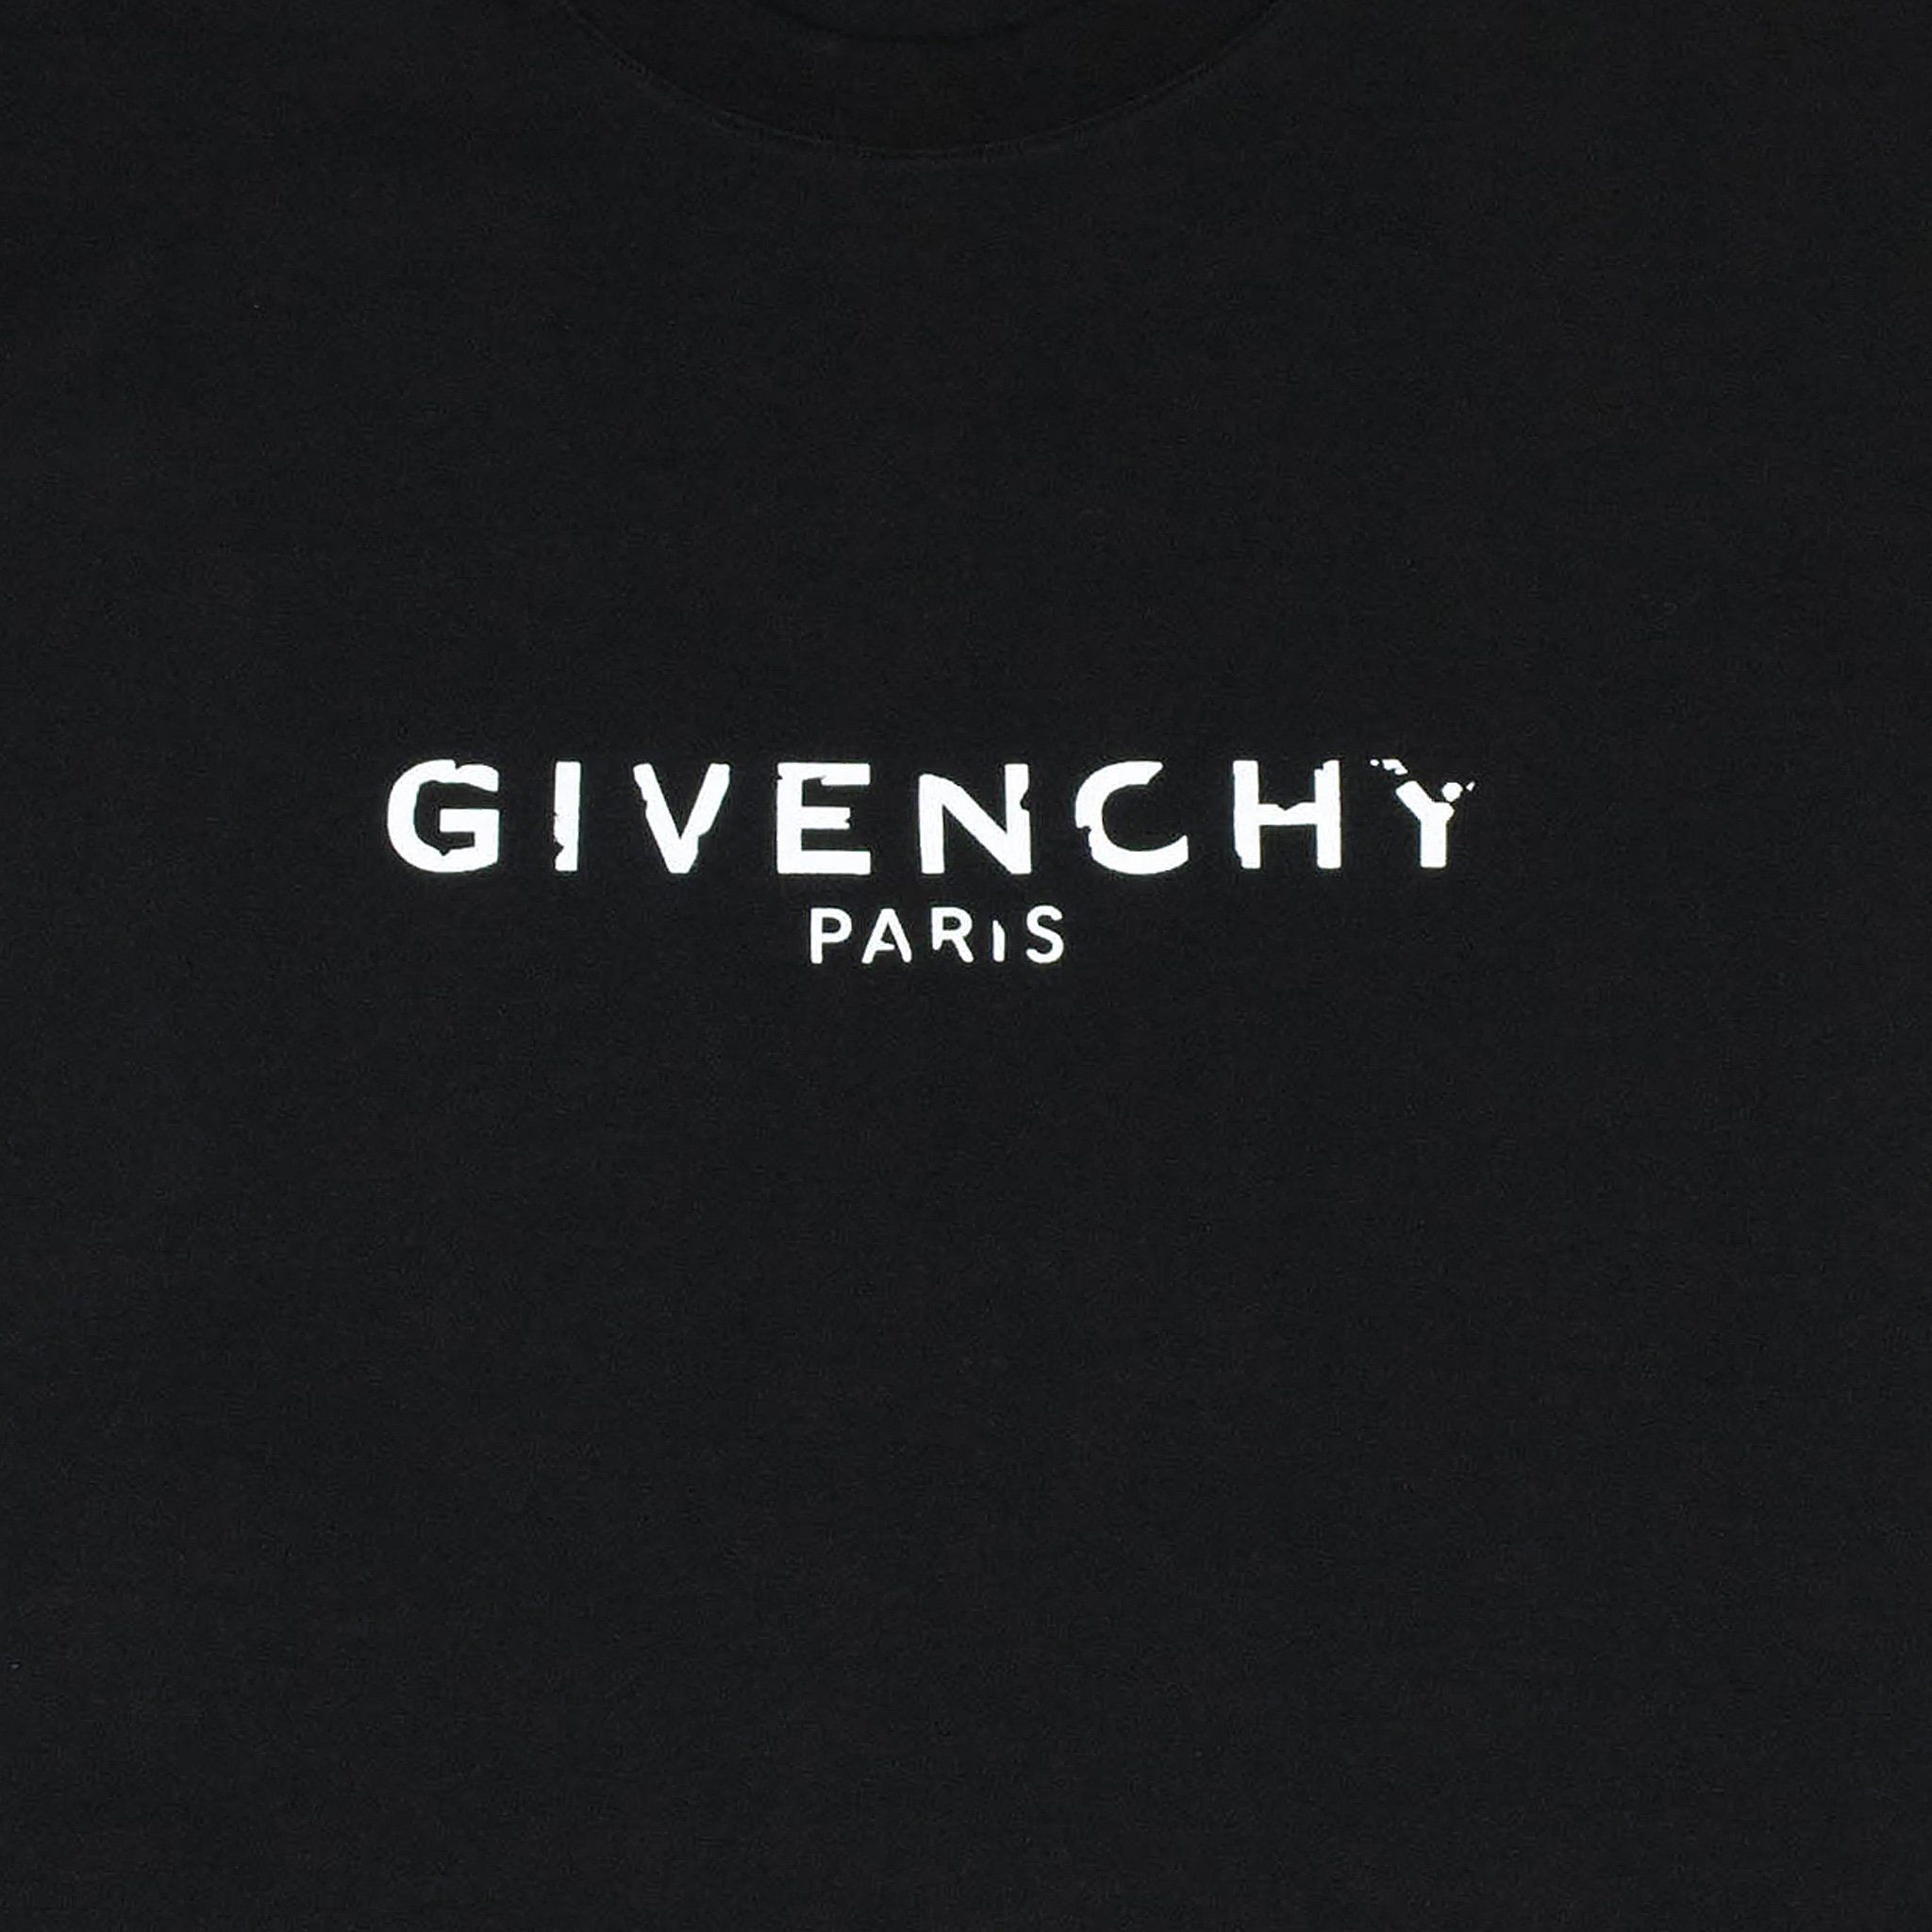 Givenchy Logo - Givenchy Paris Slim Fit Broken Logo T Shirt Black – Crepslocker